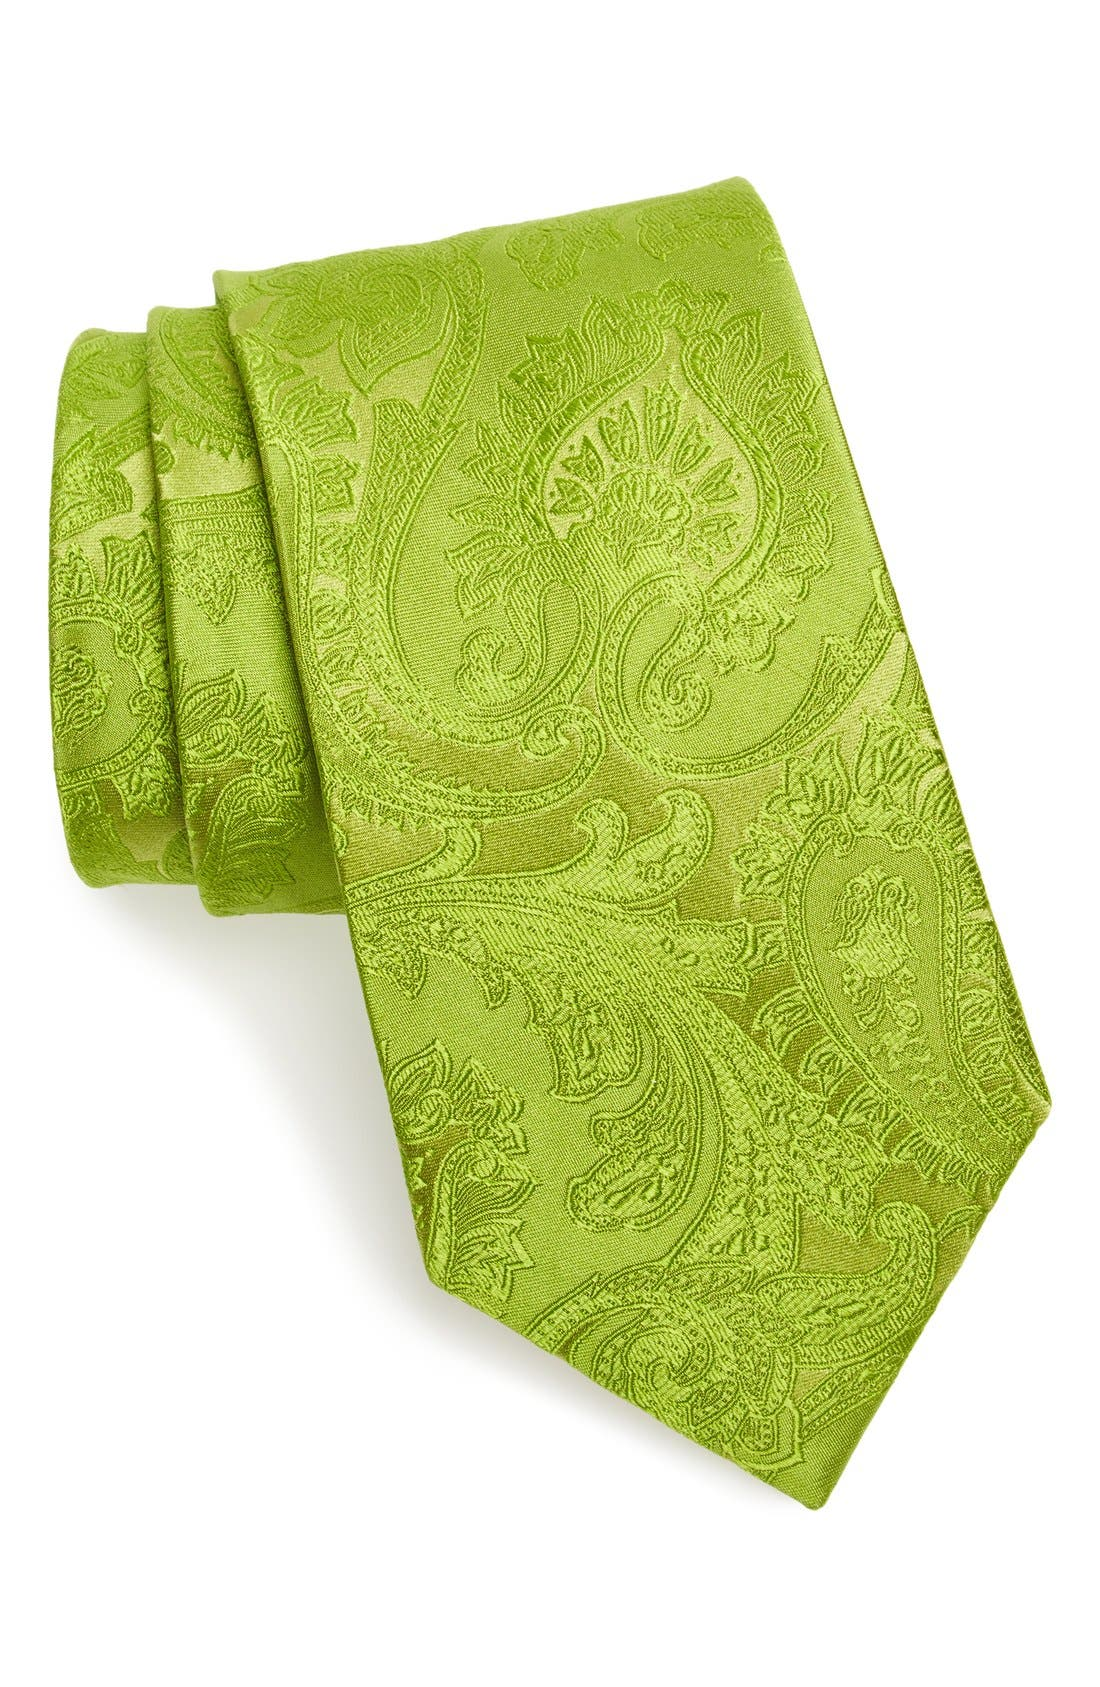 Alternate Image 1 Selected - Nordstrom Men's Shop Paisley Silk Tie (X-Long)